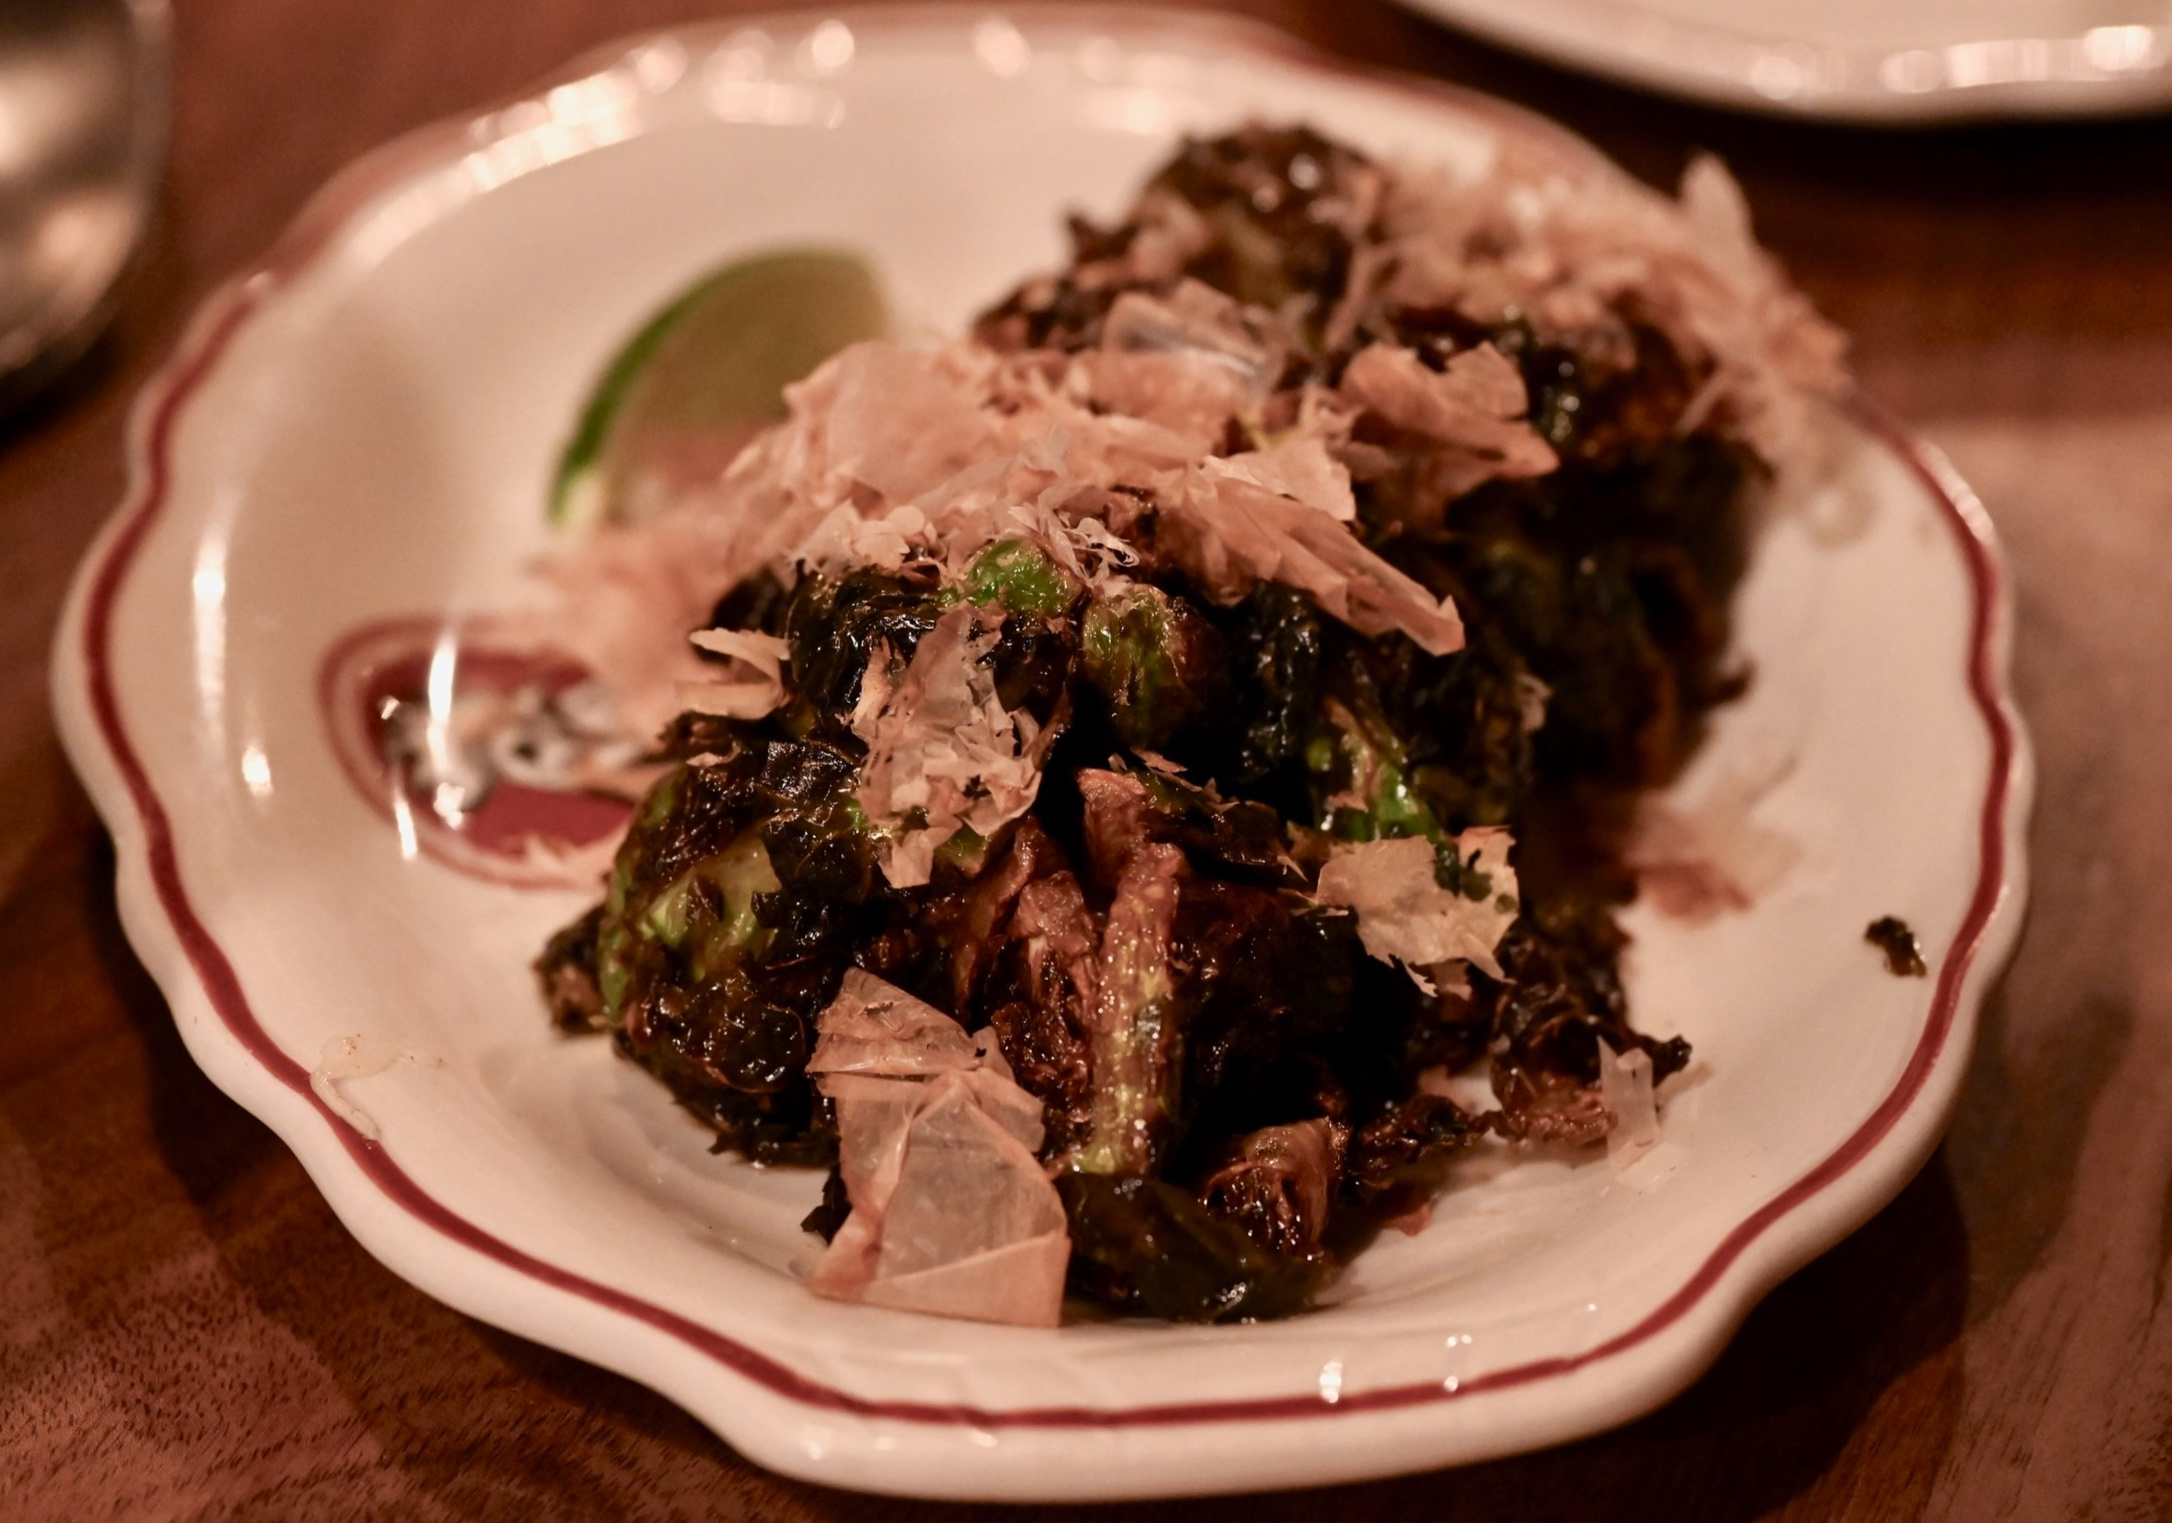 Cockscomb: Brussel Sprouts with gochuchang topped with bonito.